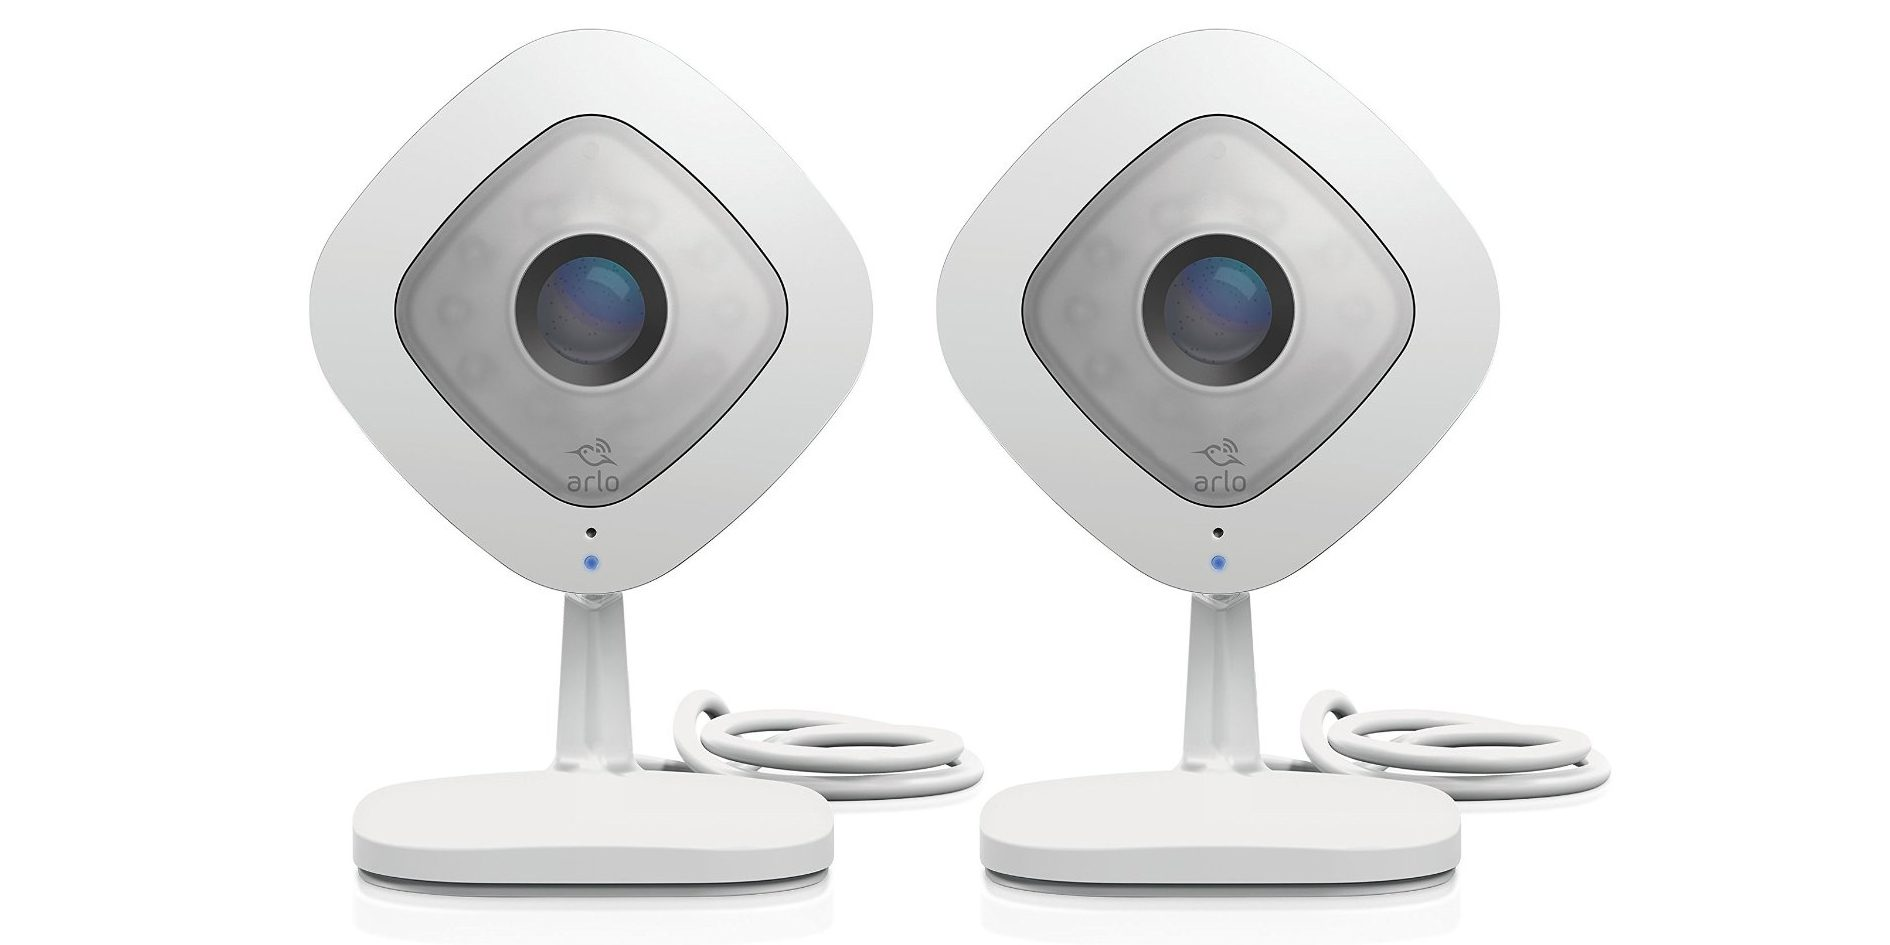 netgear-arlo-security-cameras